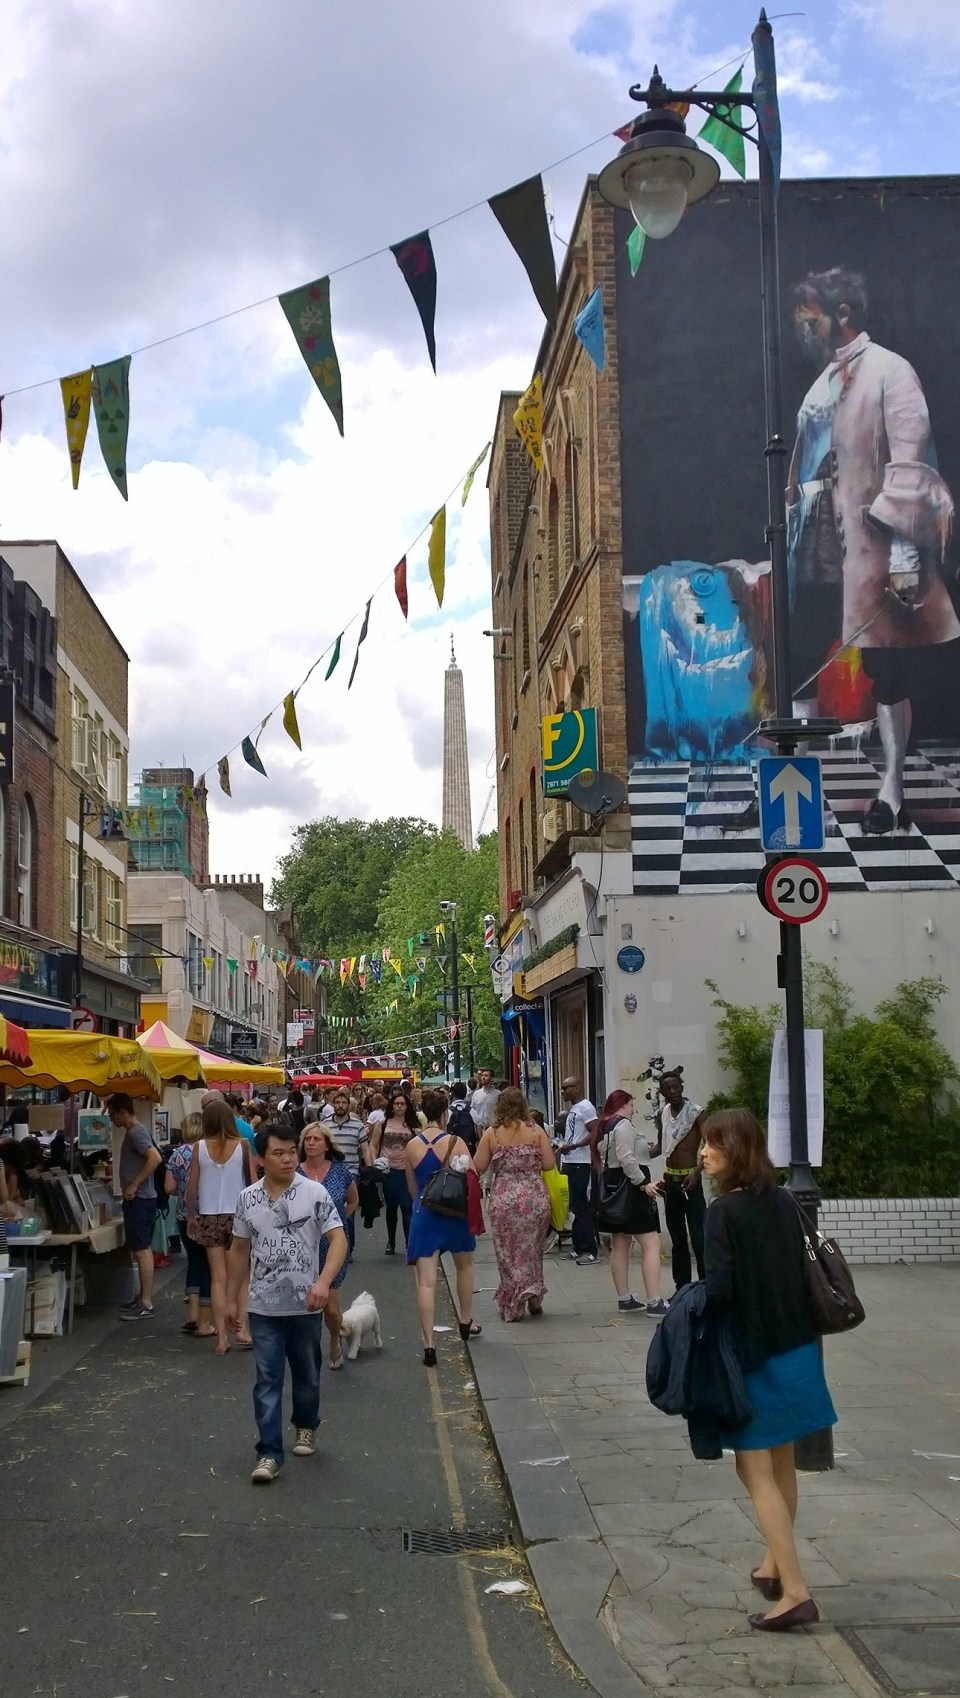 Whitecross Street with the imposing mural from Conor Harrington